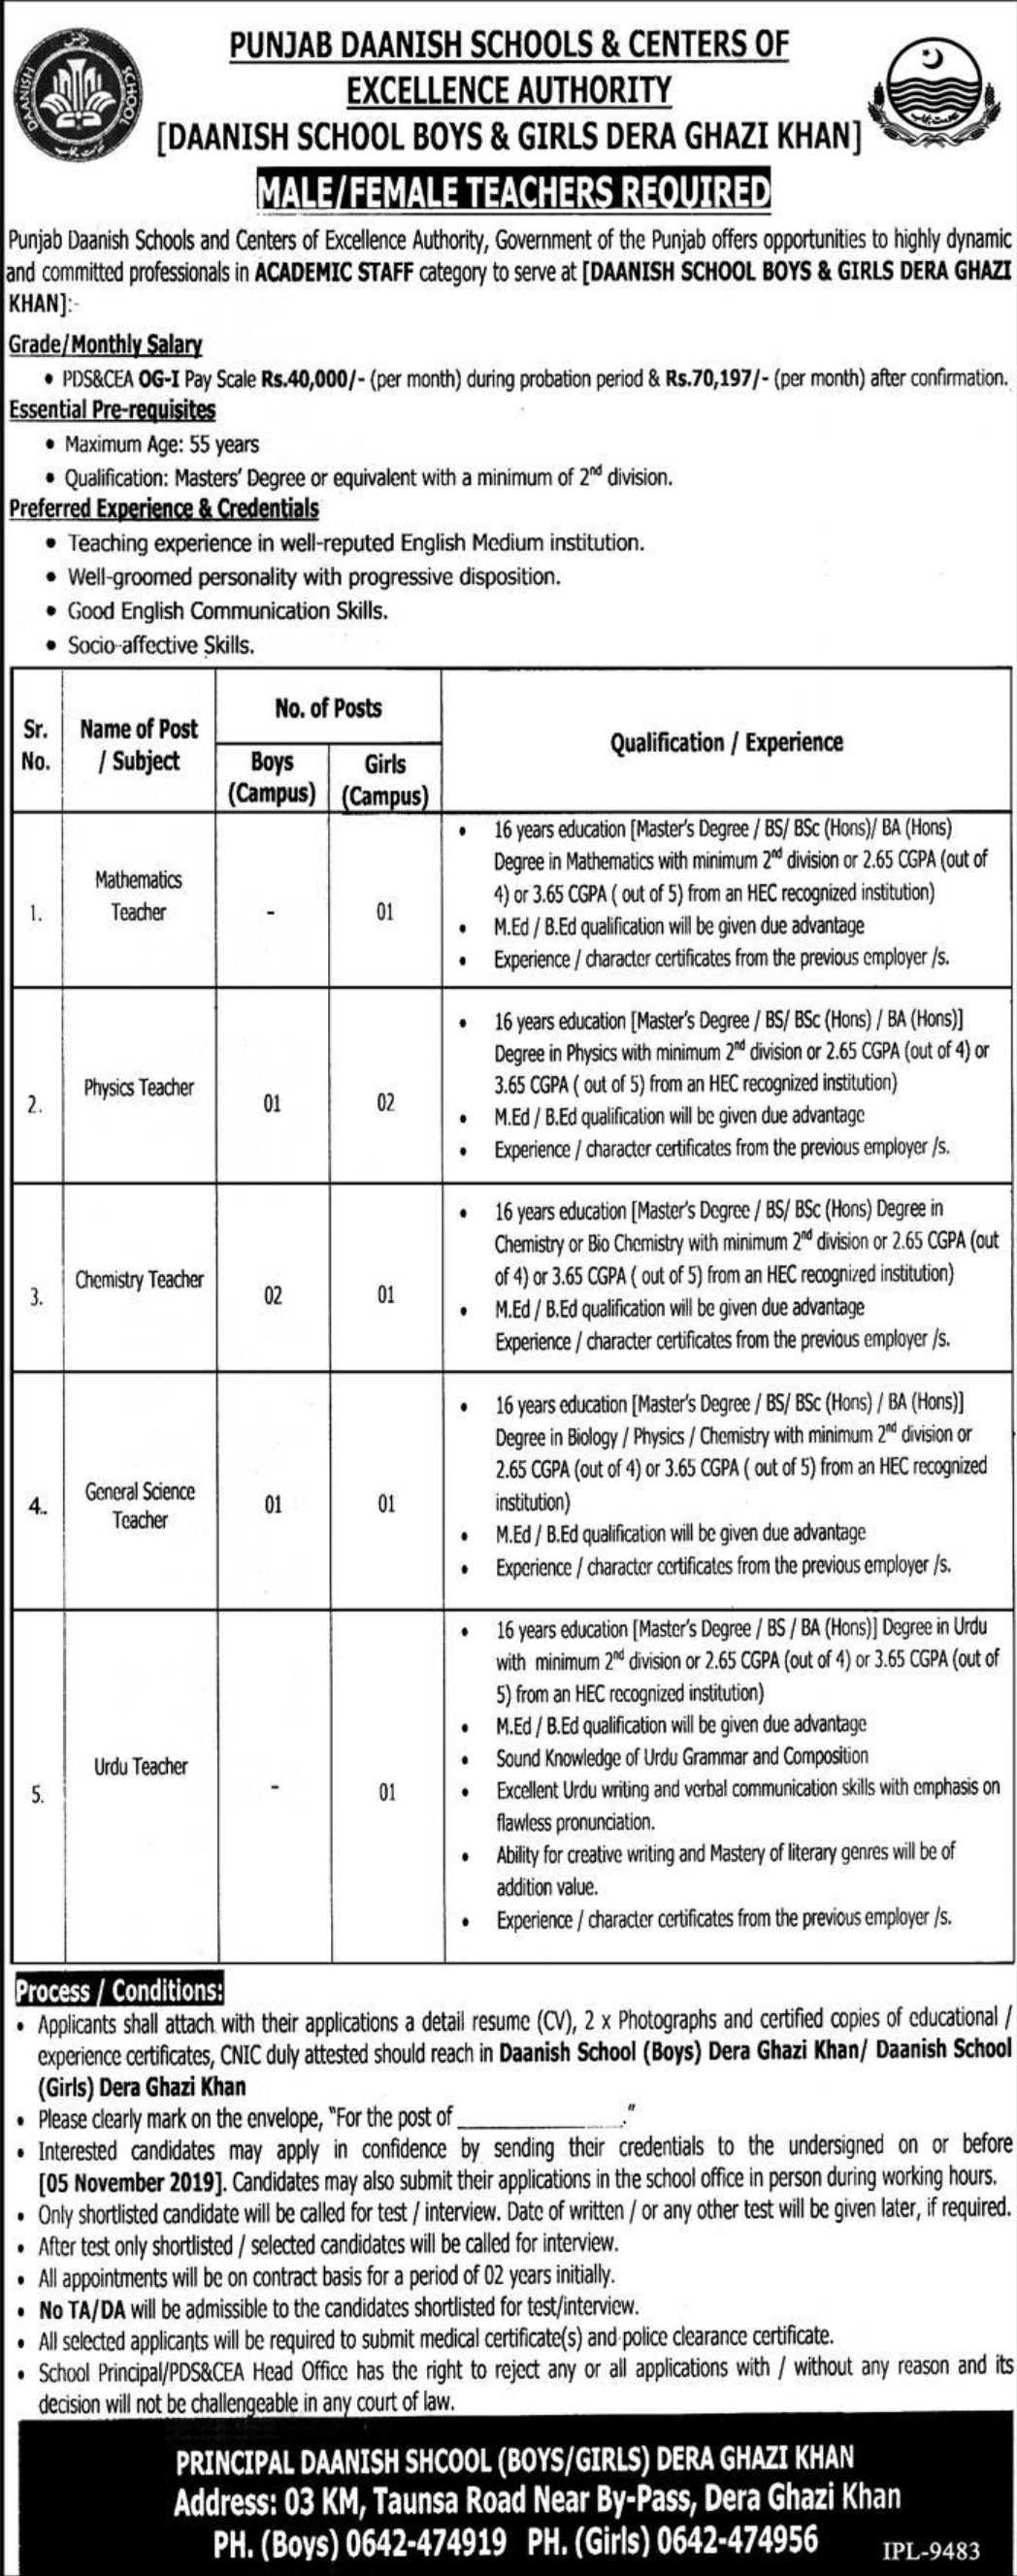 Punjab Daanish School Jobs 2019 D.G Khan